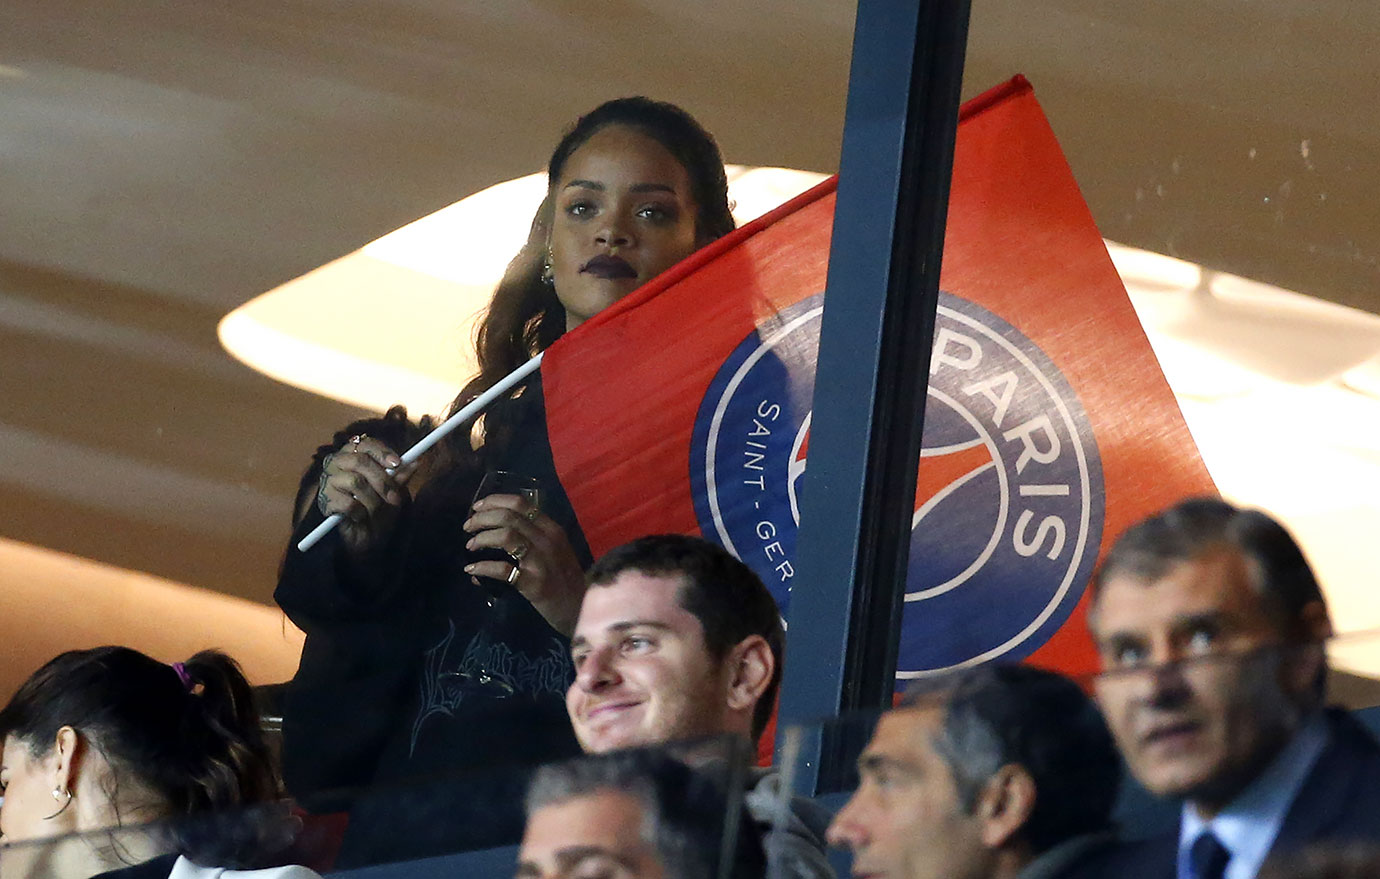 Rihanna waves a flag for Paris Saint-Germain FC (PSG) during their French Ligue 1 match against Olympique de Marseille at Parc des Princes stadium on Oct. 4, 2015 in Paris.